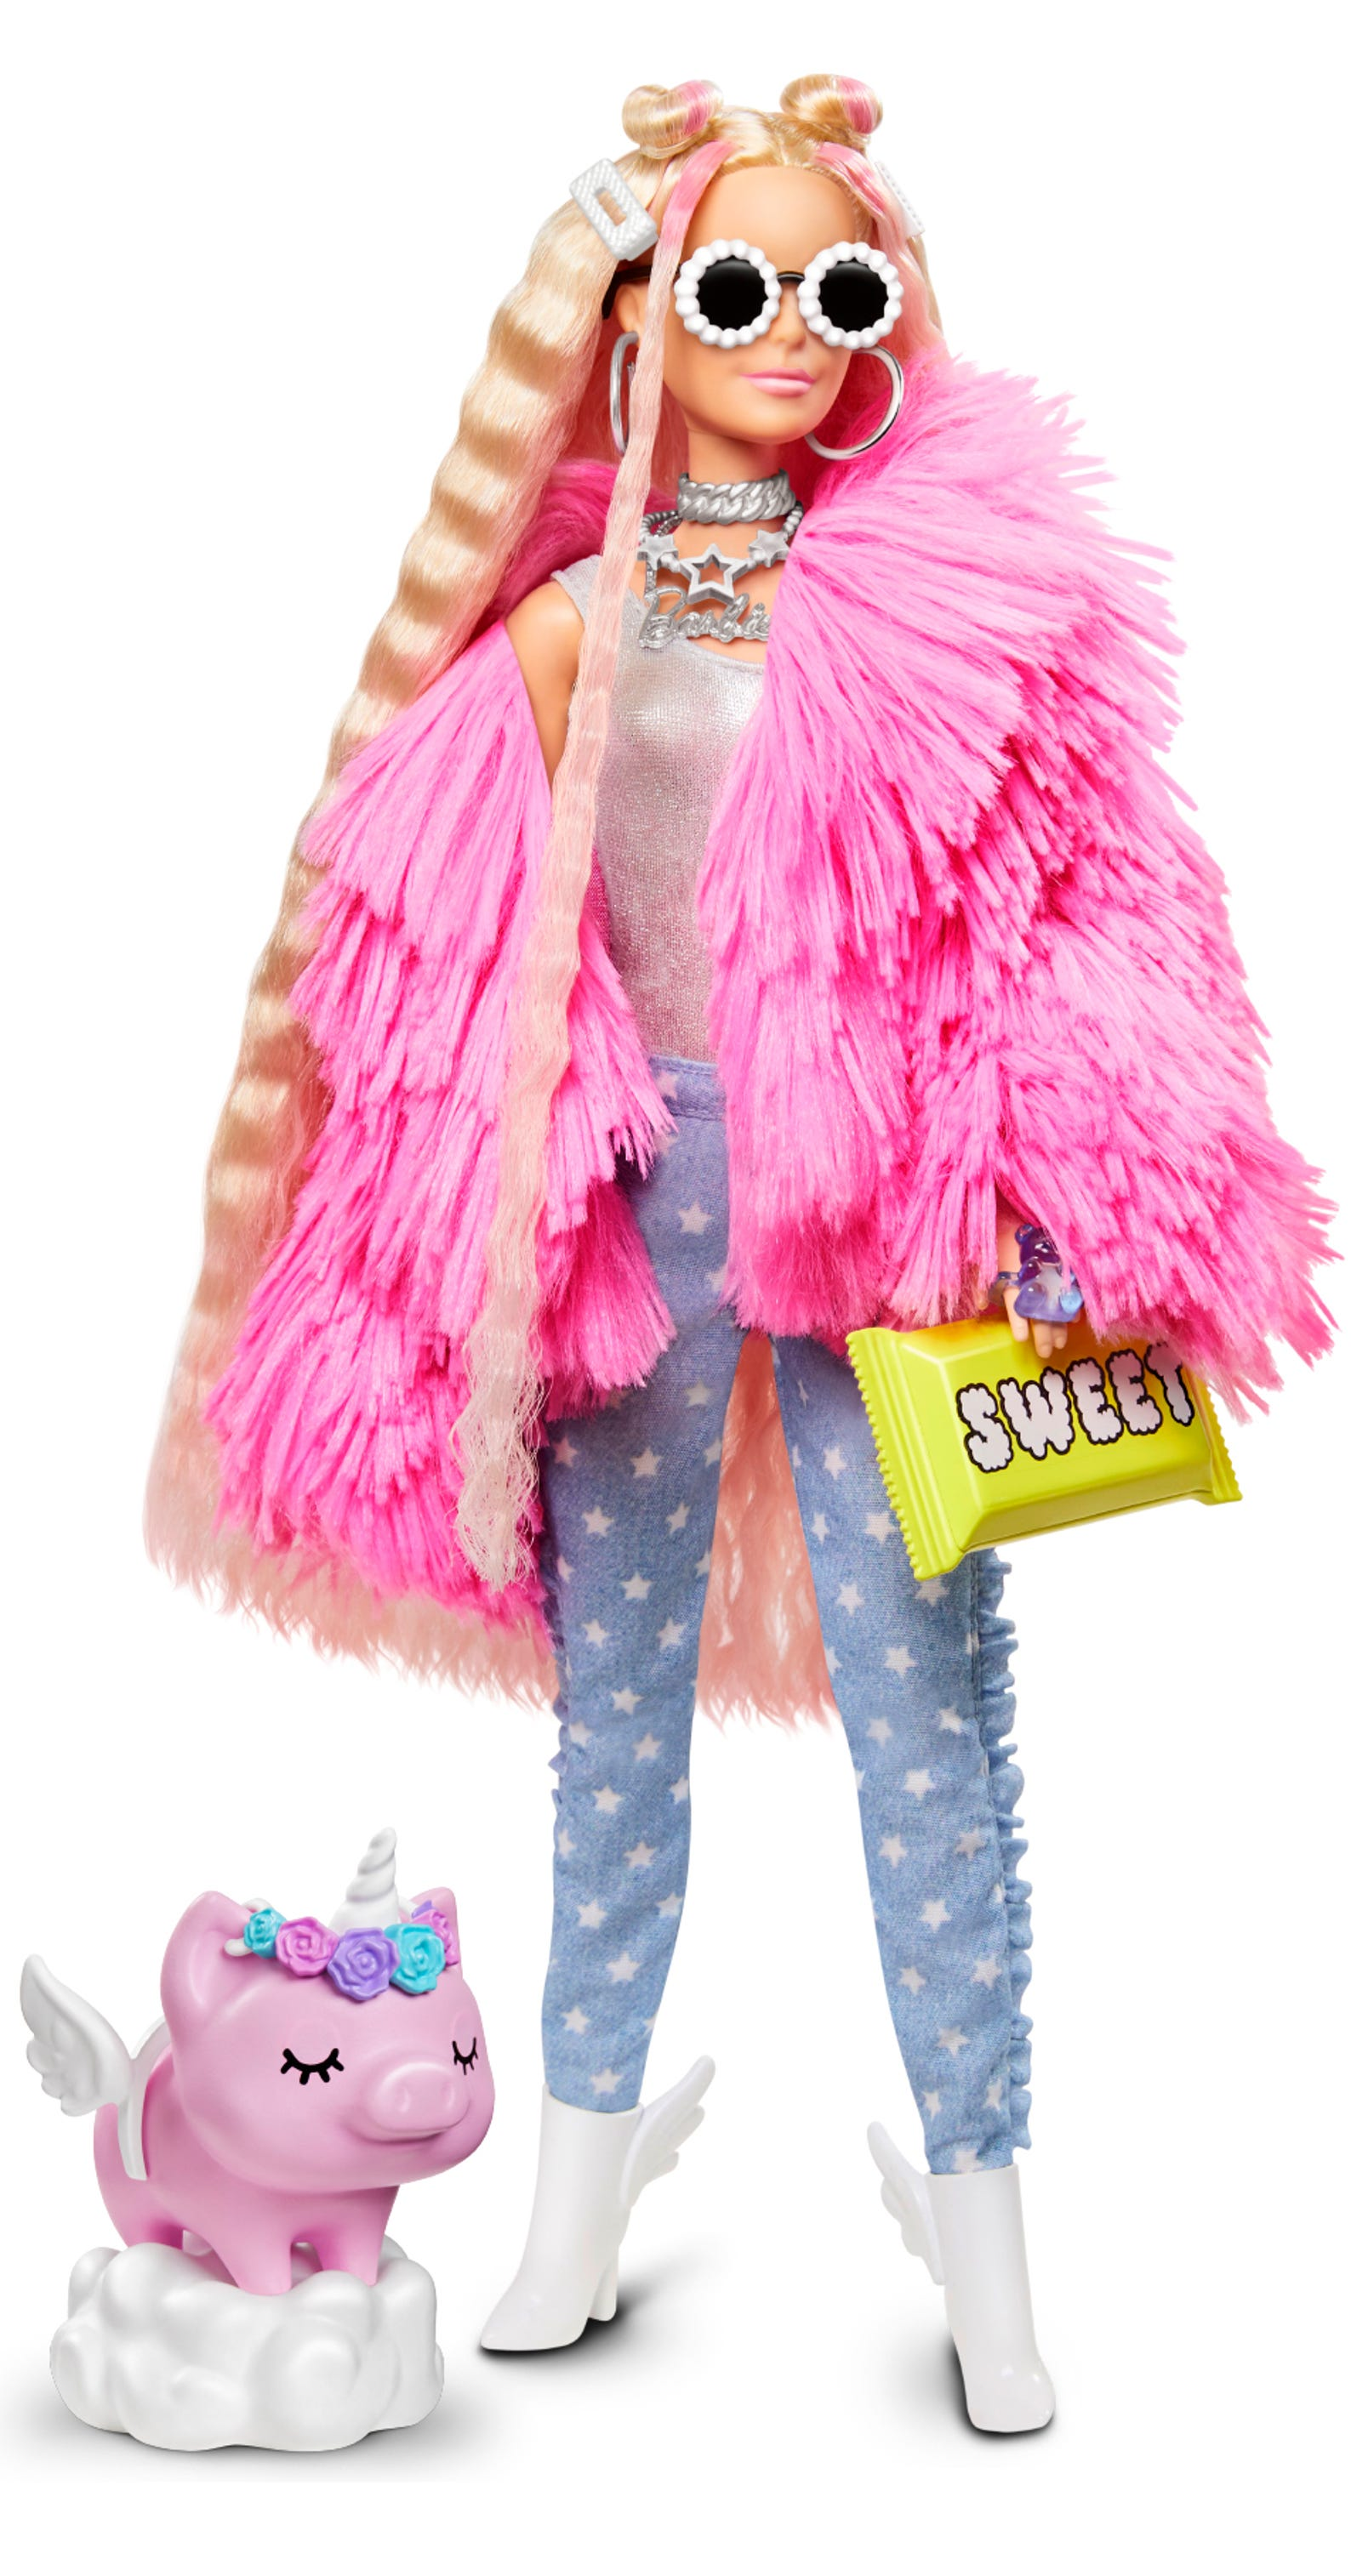 This Barbie Extra doll has blonde hair with pink streaks and wears a fluffy pink jacket with jeans and winged boots. Her pet pig comes with a unicorn flower crown headband and removable unicorn wings.